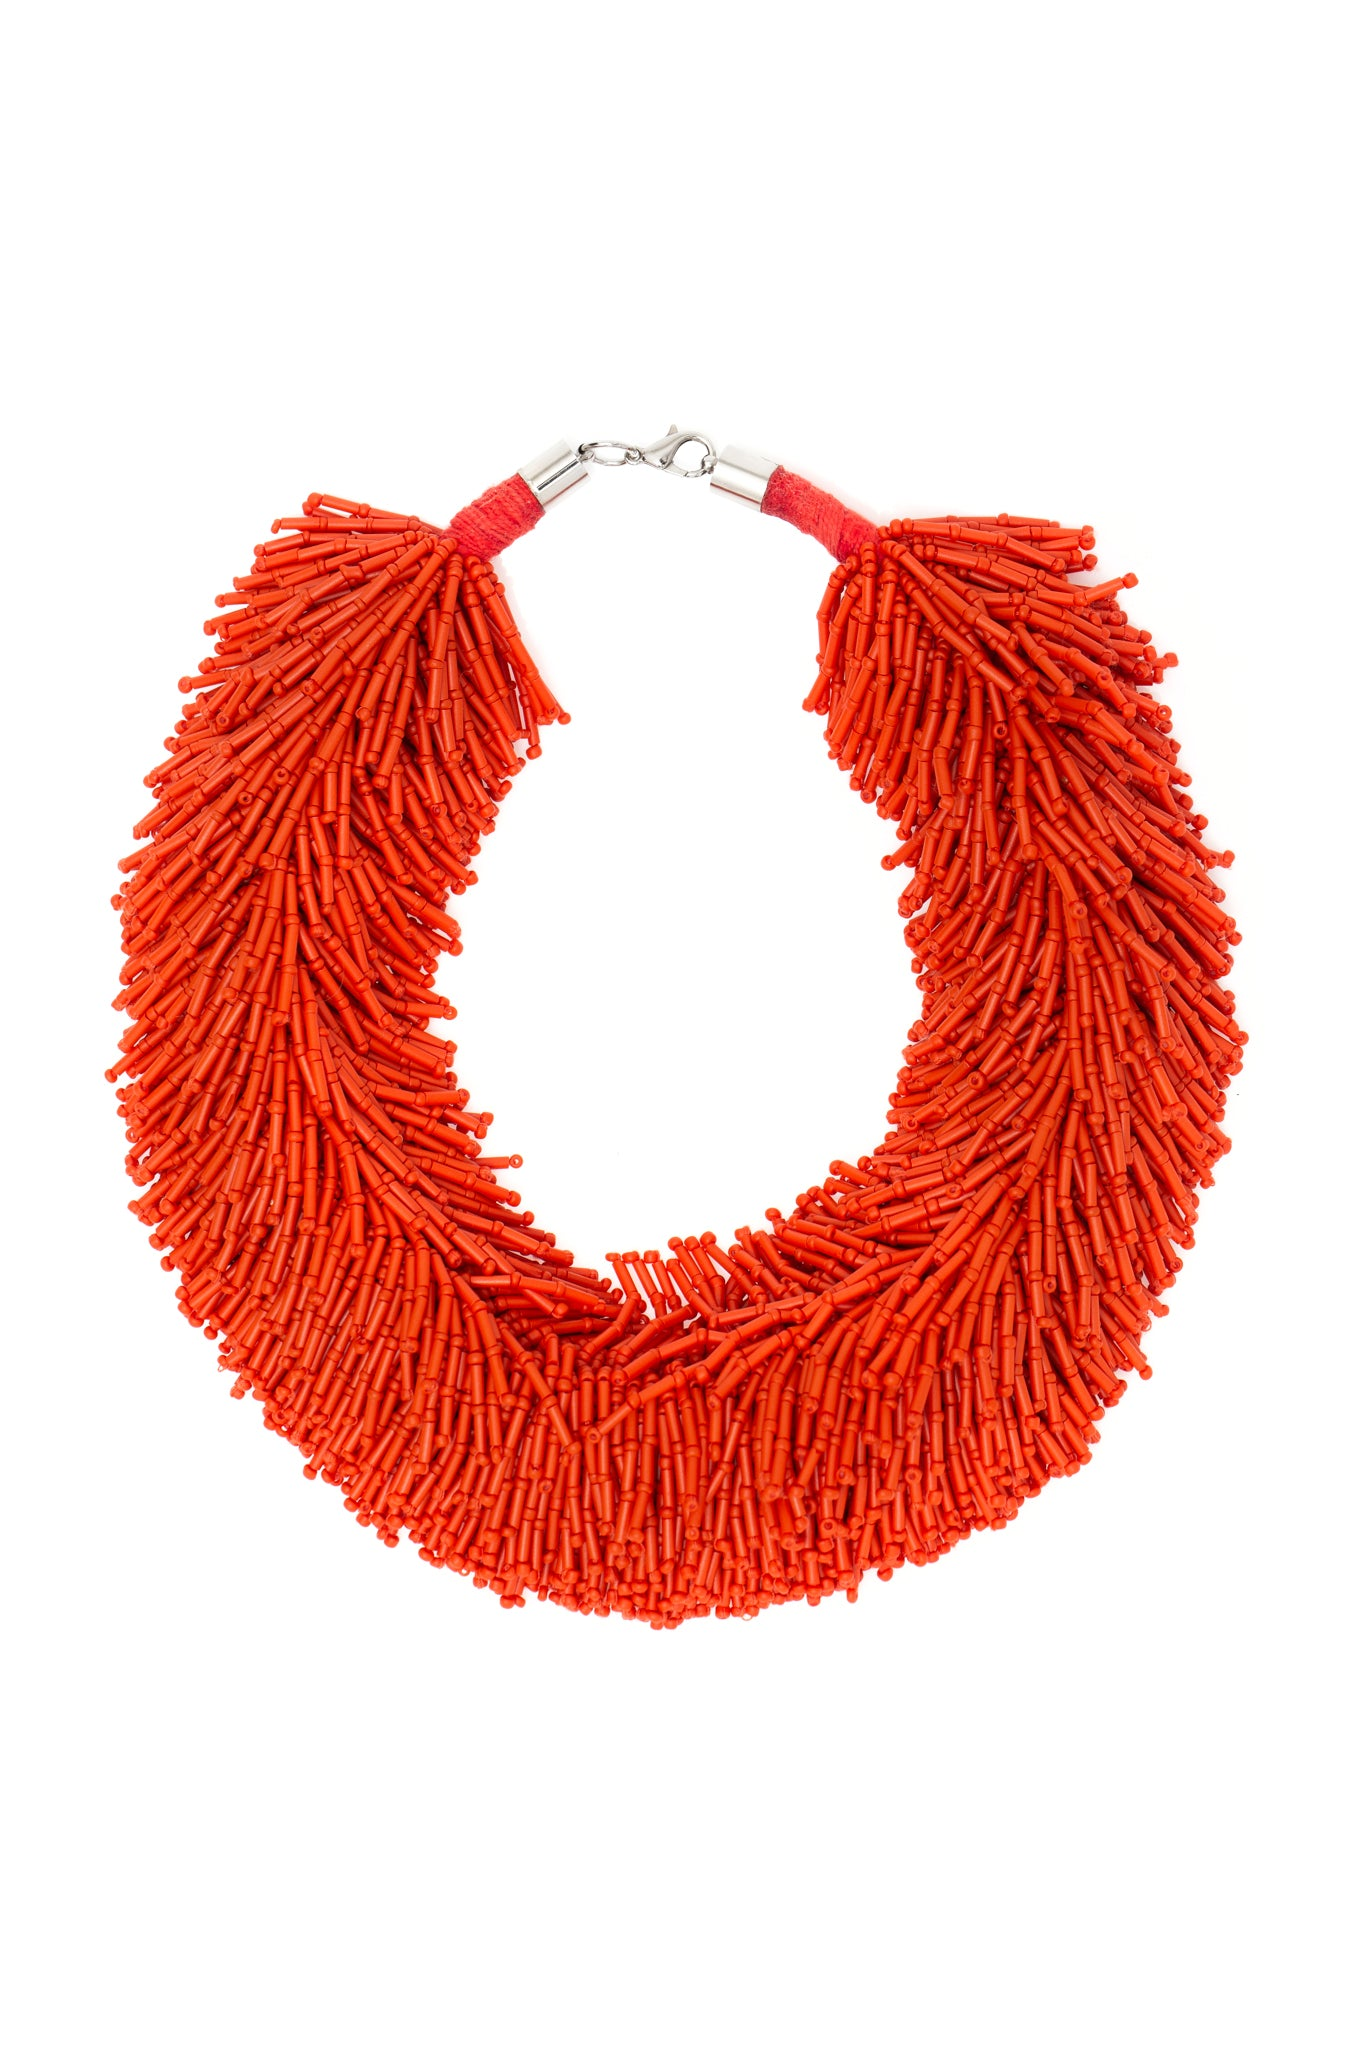 ORANGE SHOWER NECKLACE